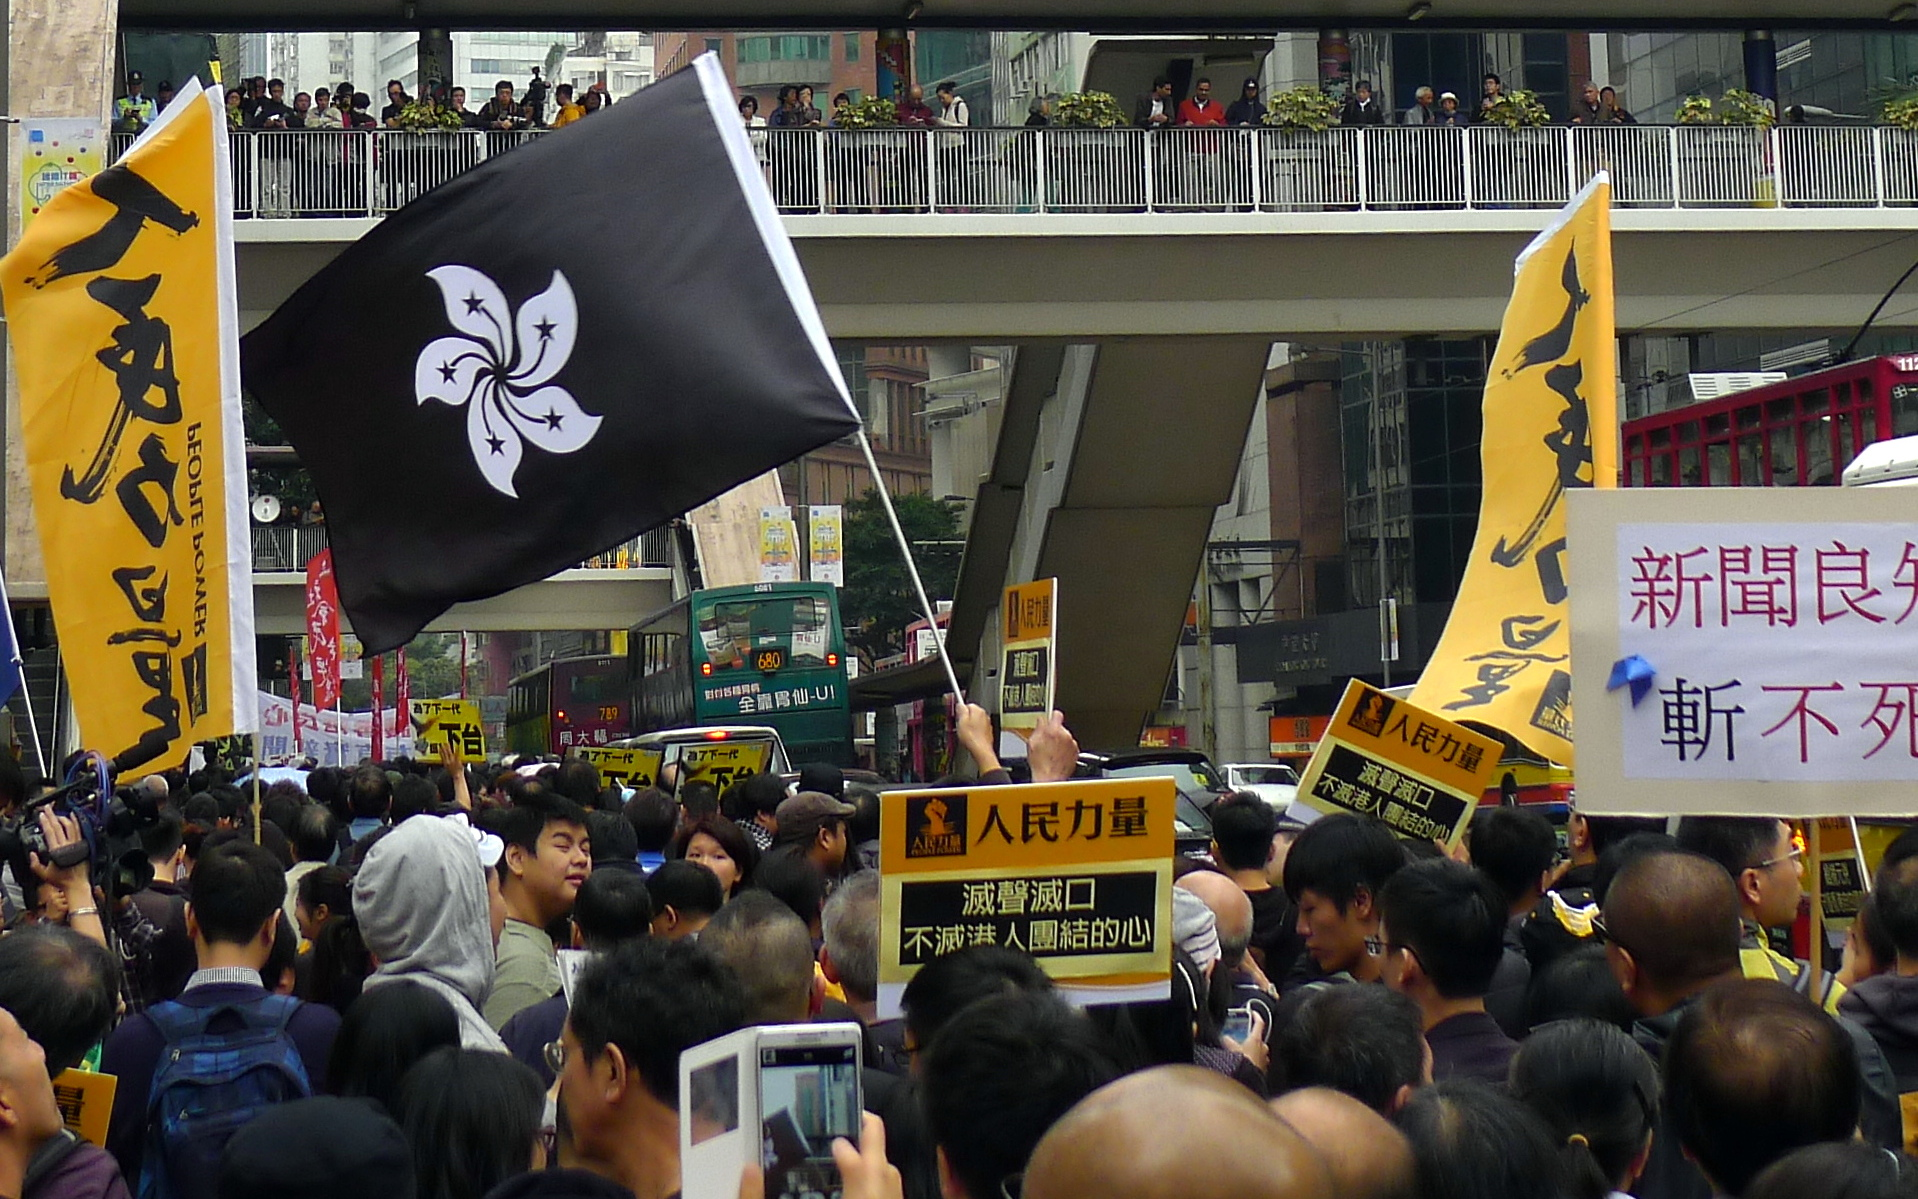 Public protests indicate the growing disappointment in Hong Kong's government.